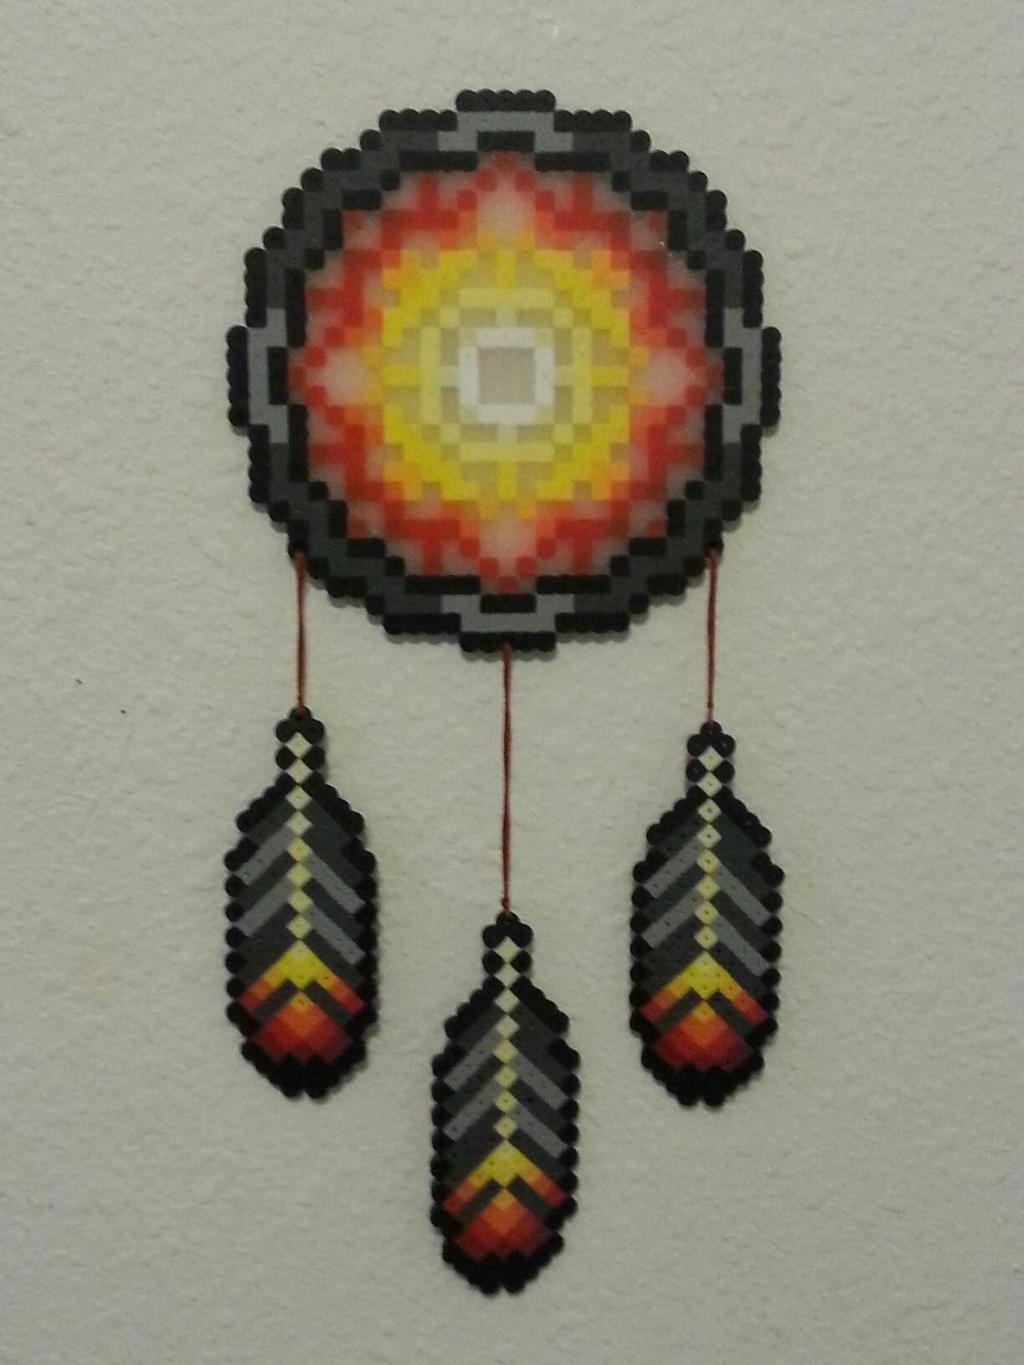 Sweet dreams are made of beads by werbenjagermanjensen on for Dreamcatcher beads meaning